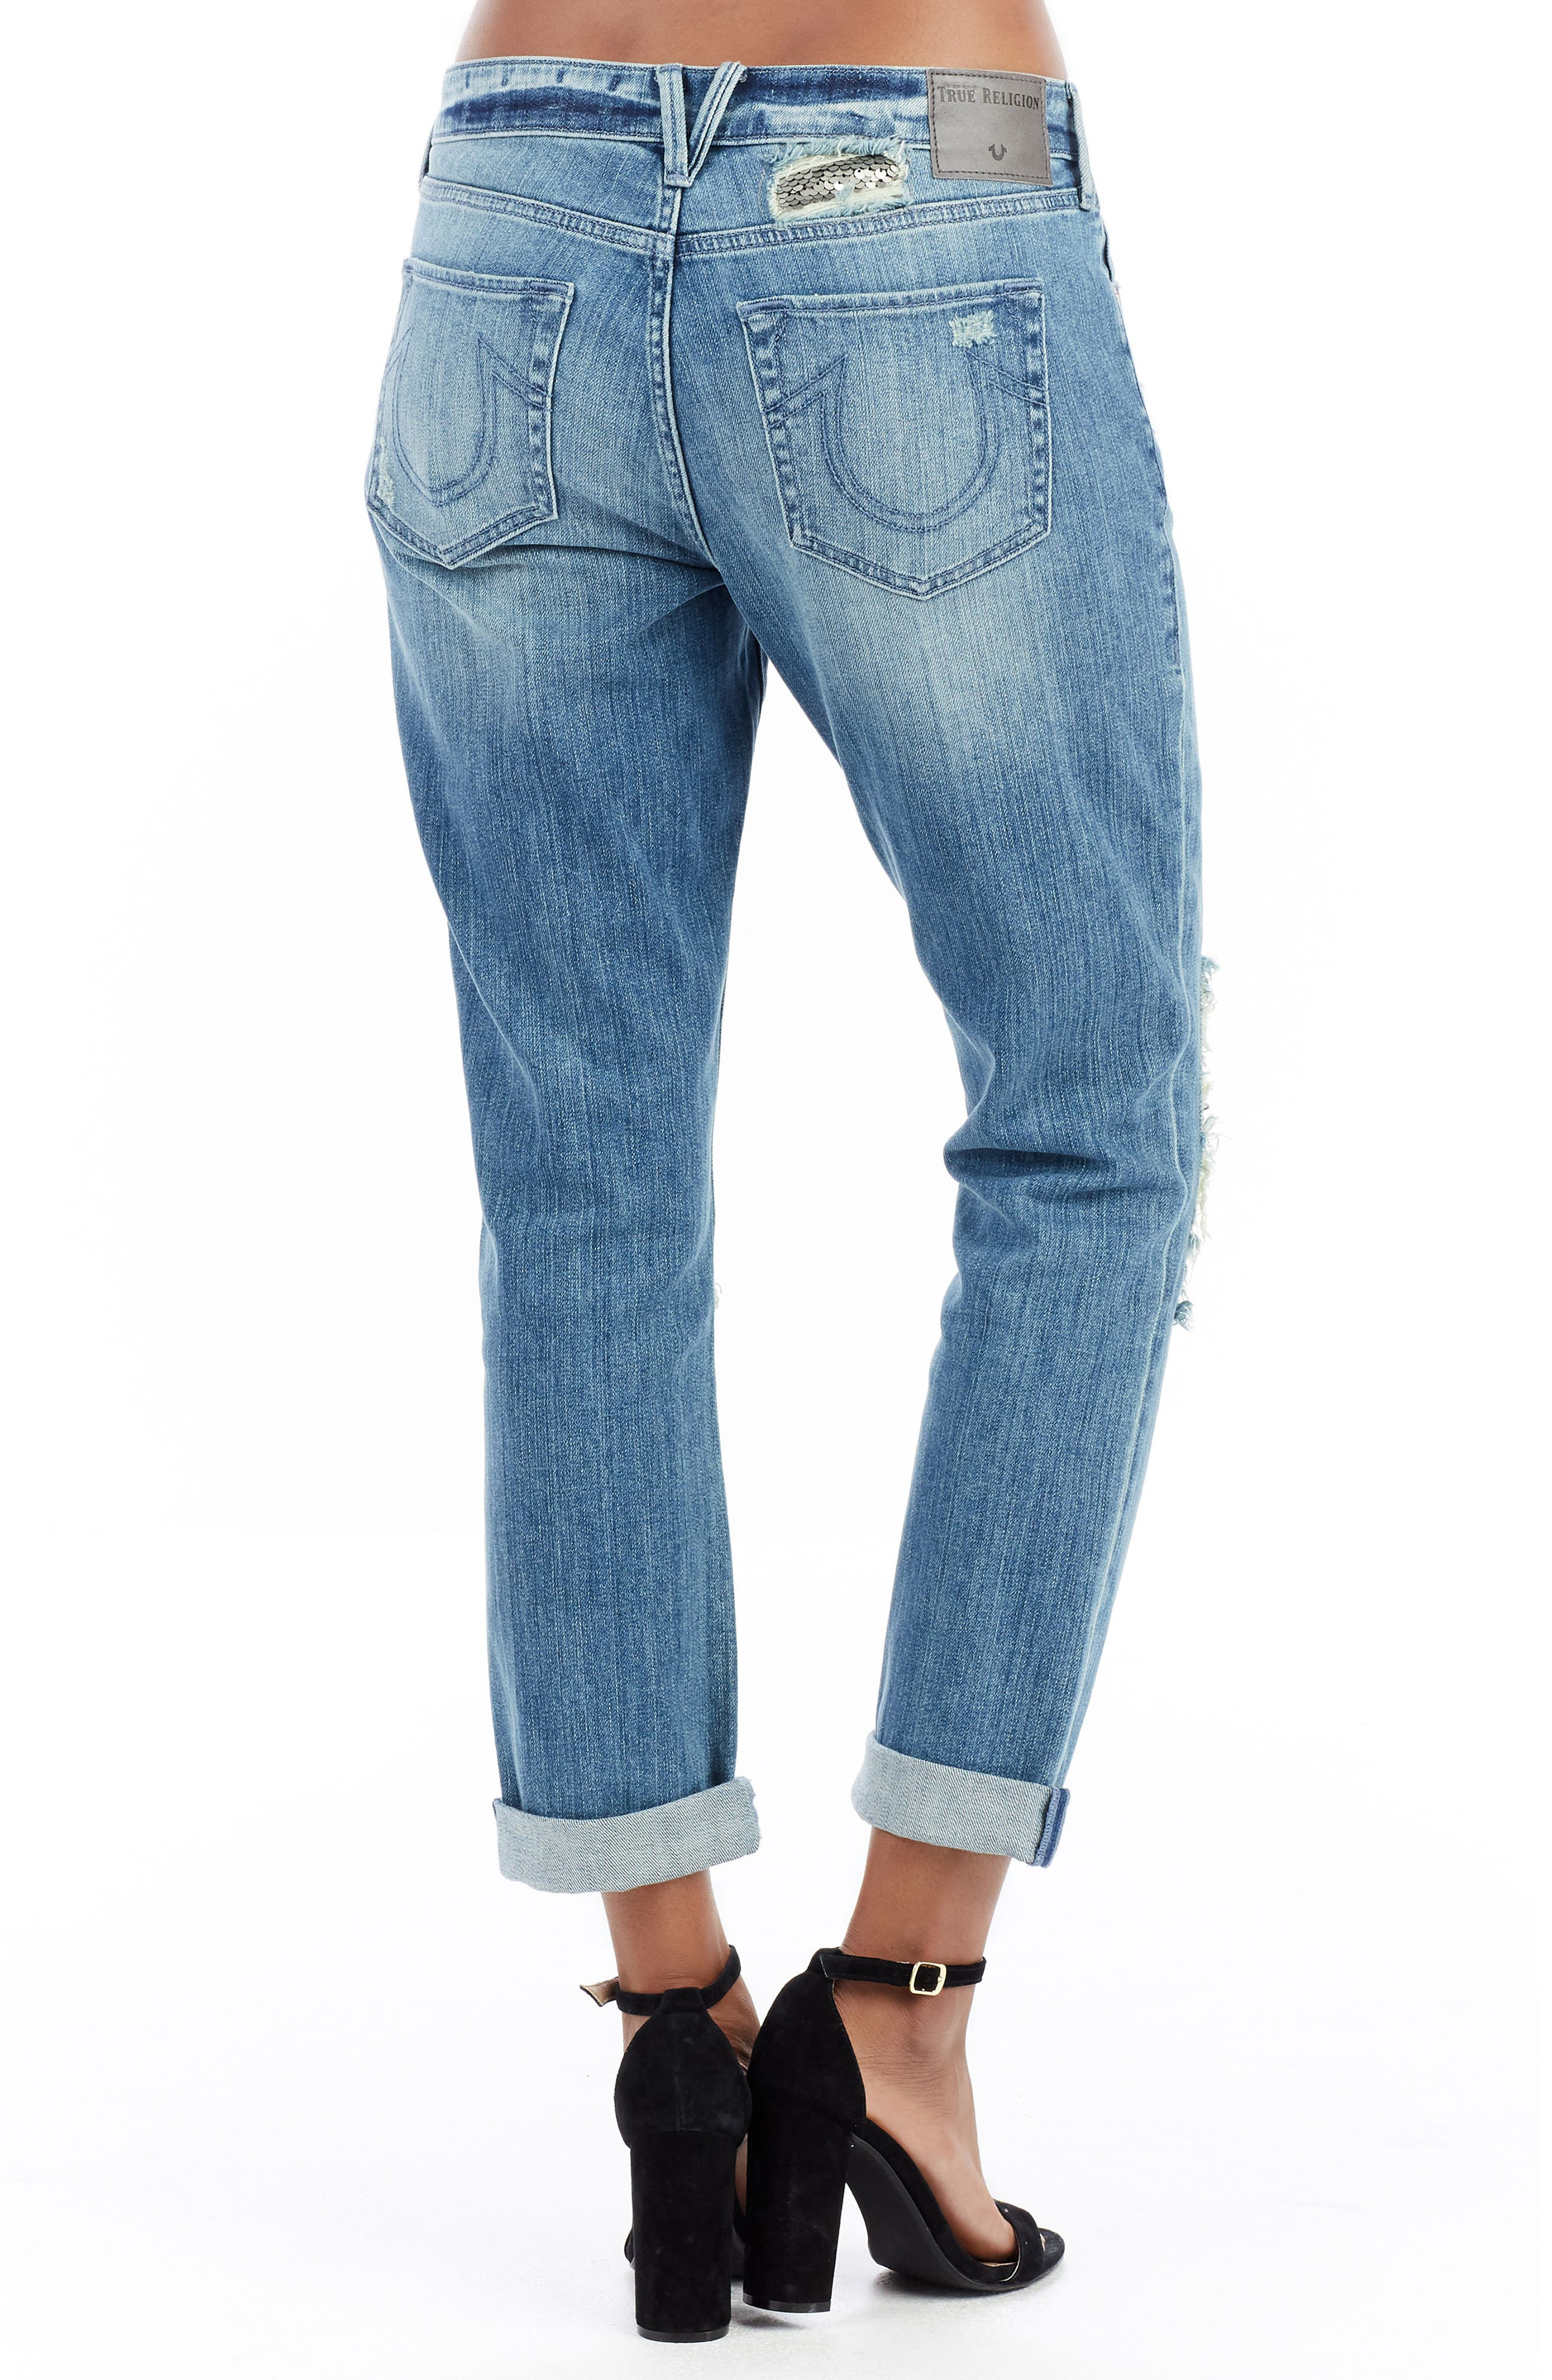 Cameron Slim Boyfriend Jeans,                             Alternate thumbnail 3, color,                             Dark Rebel Shadow